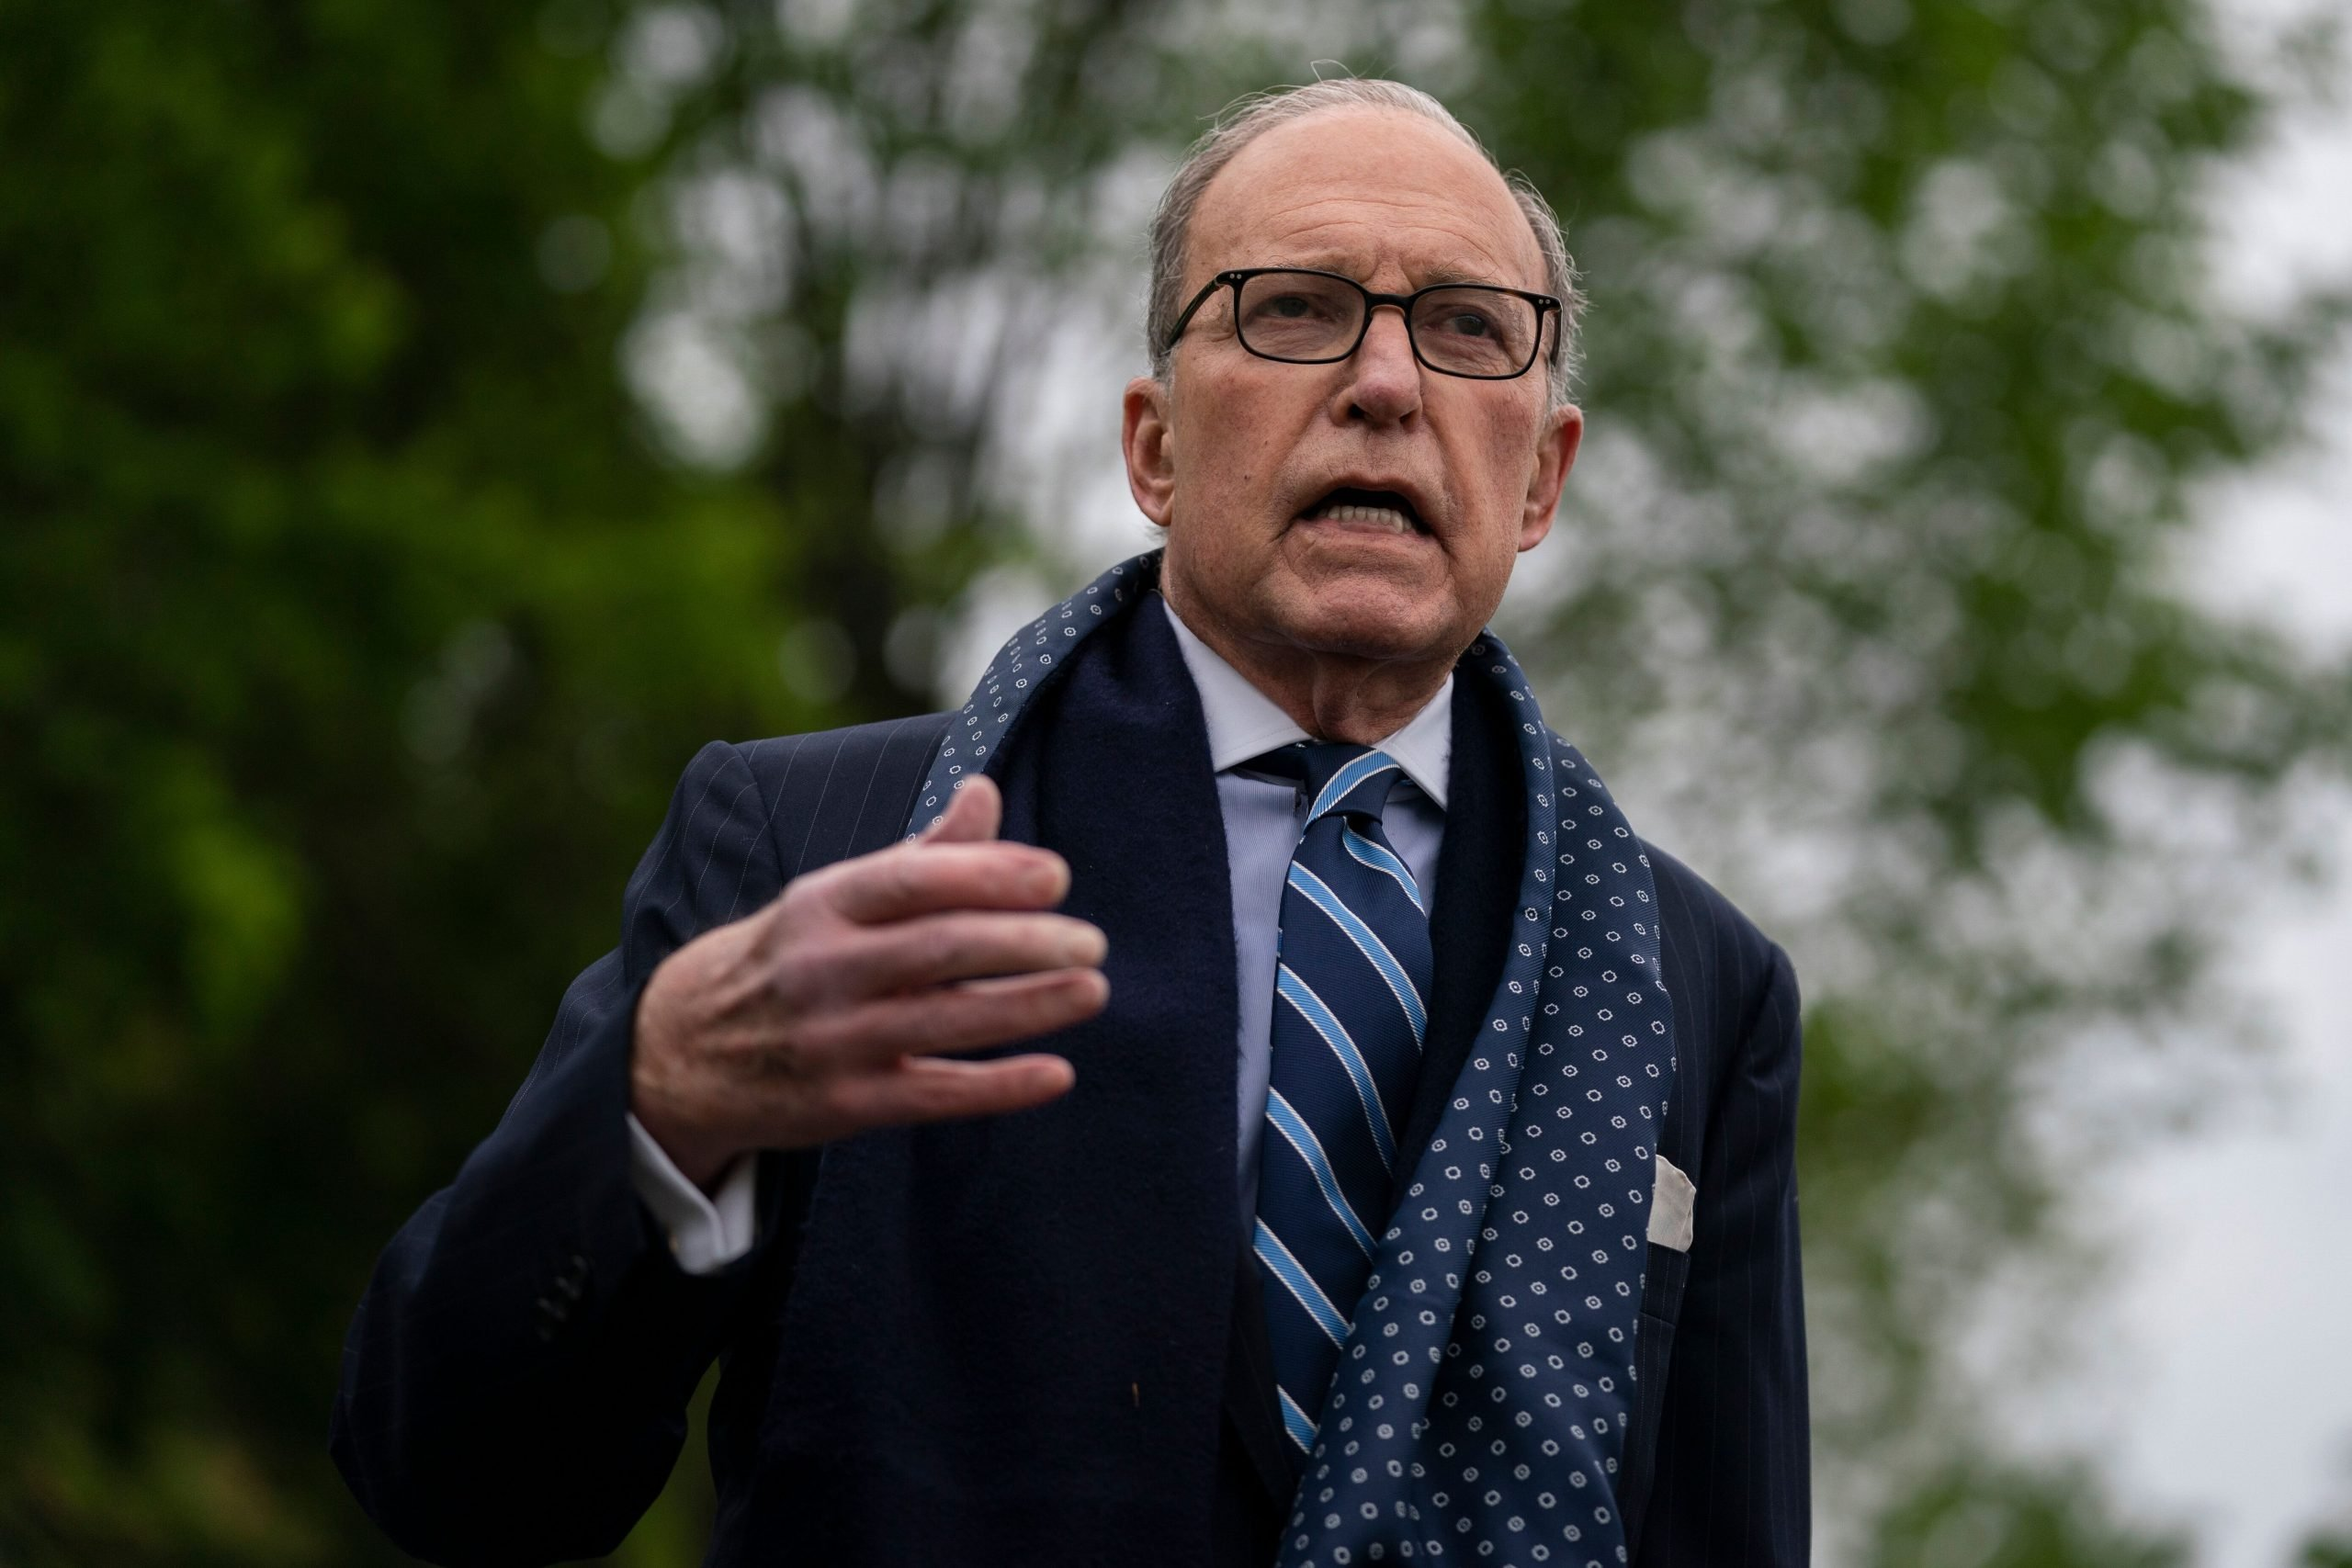 White House Economic Adviser Larry Kudlow said Wednesday that businesses should not be held liable if workers contract the co